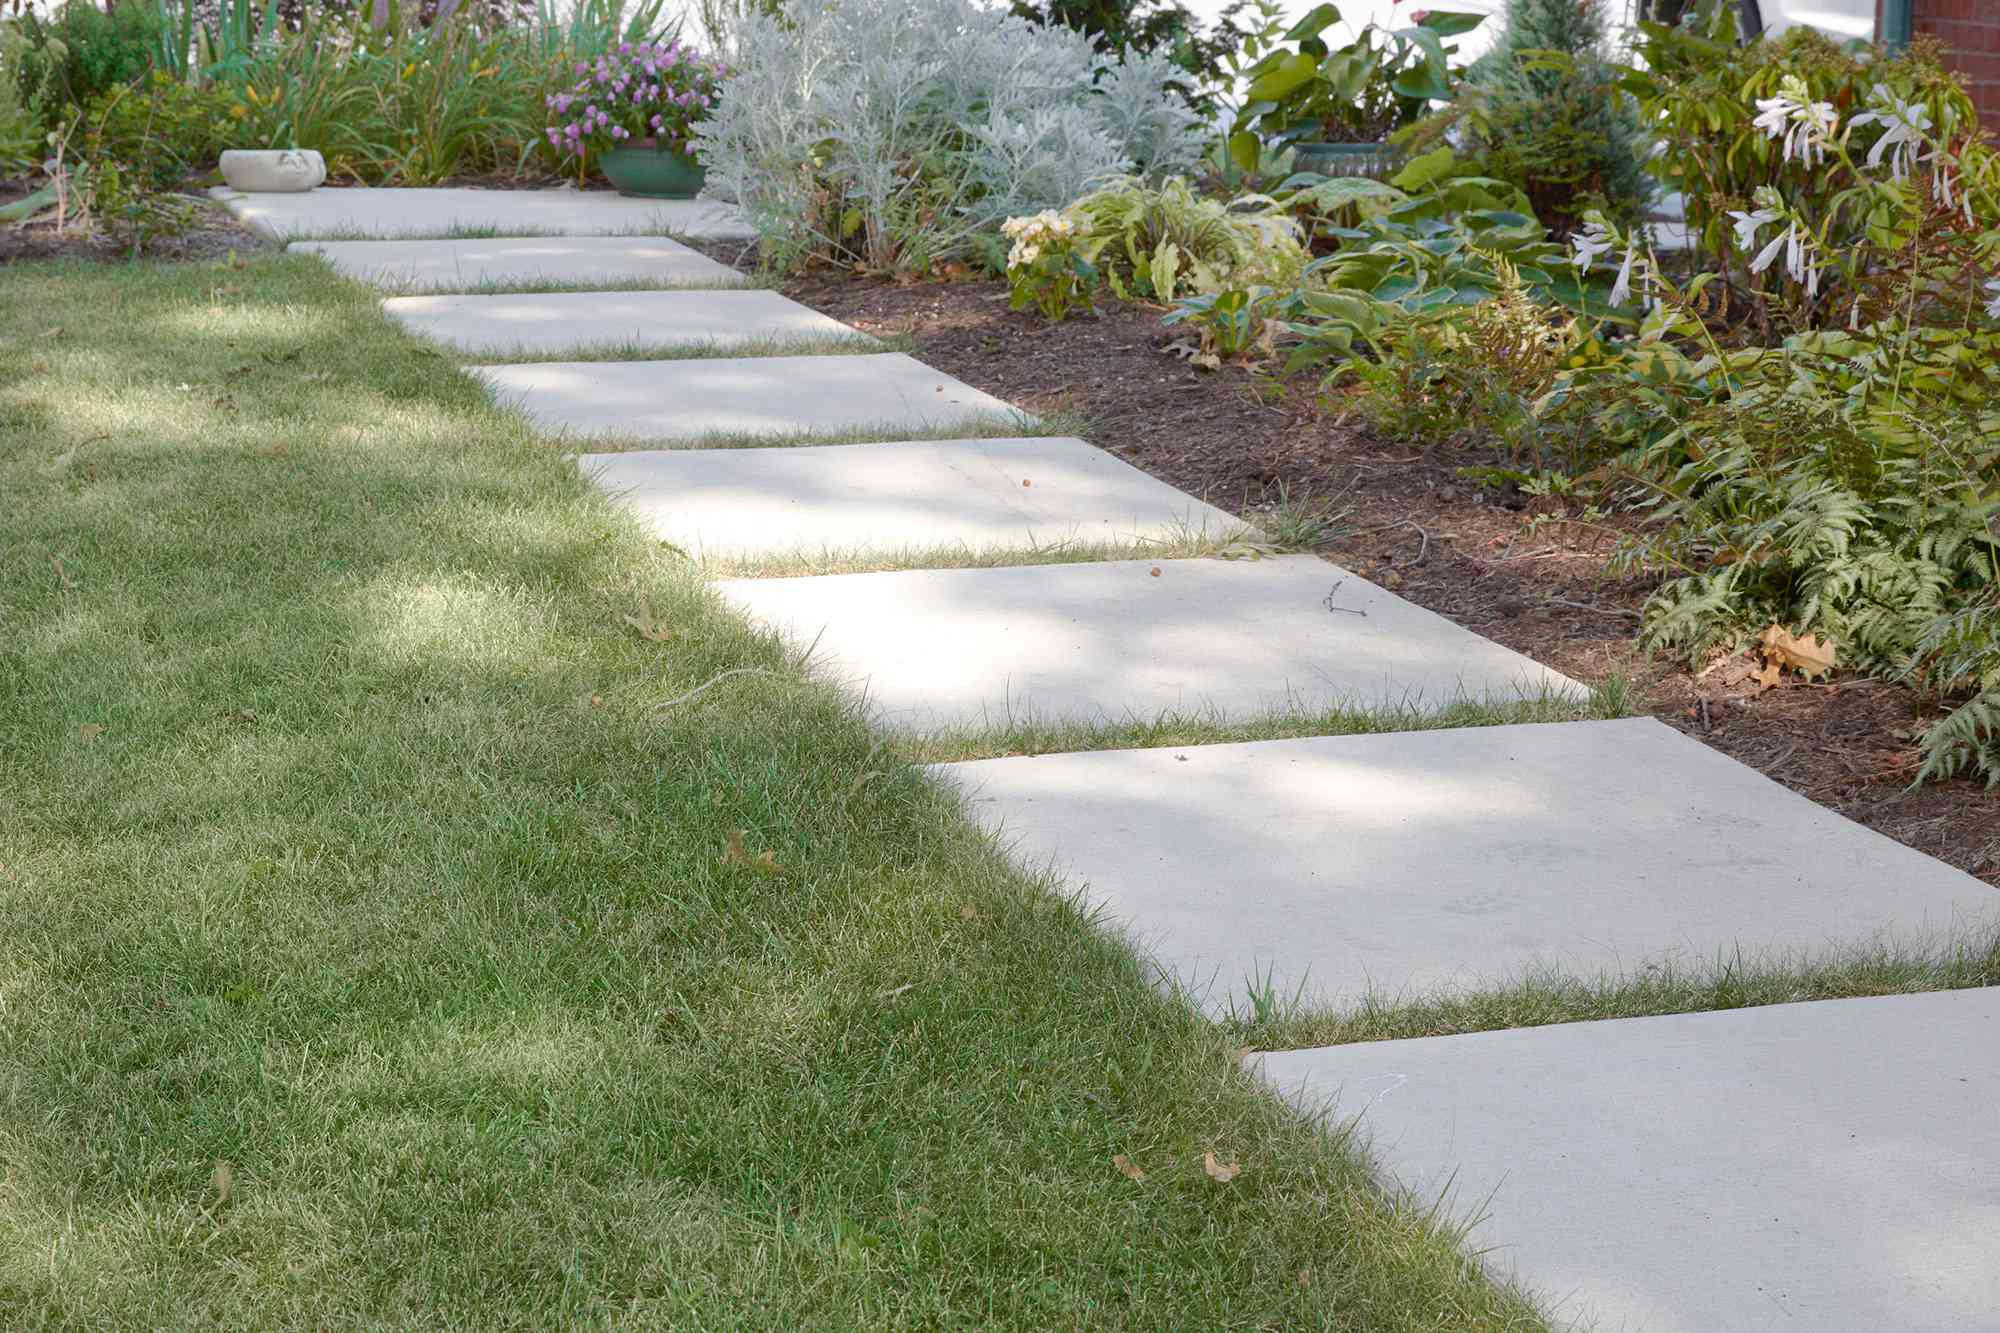 White stone walkway next to grass lawn checked for slope causing wet basement